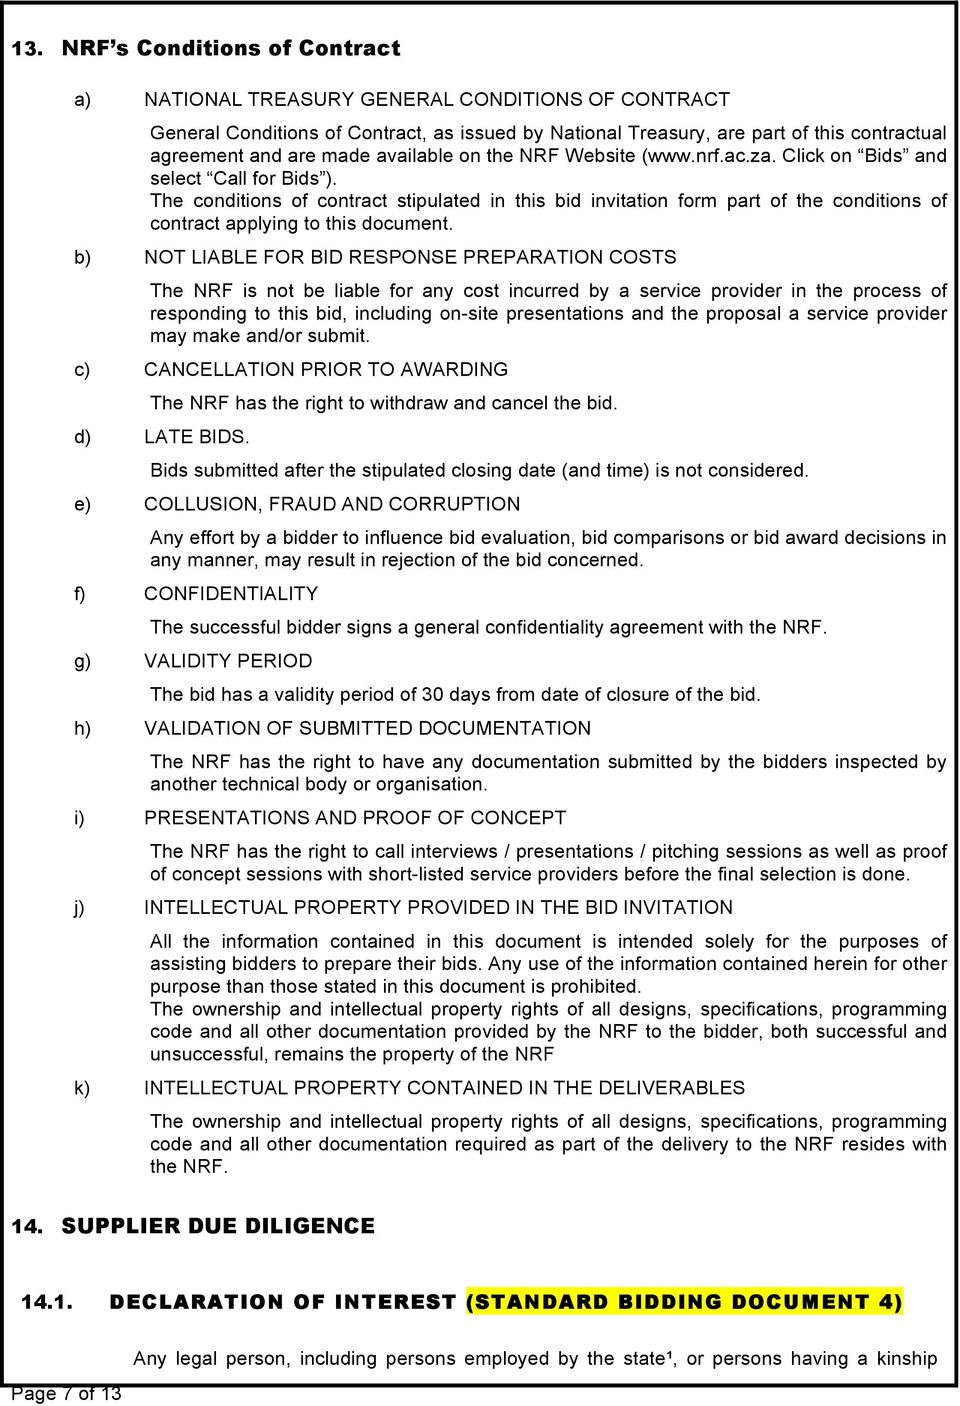 The conditions of contract stipulated in this bid invitation form part of the conditions of contract applying to this document.